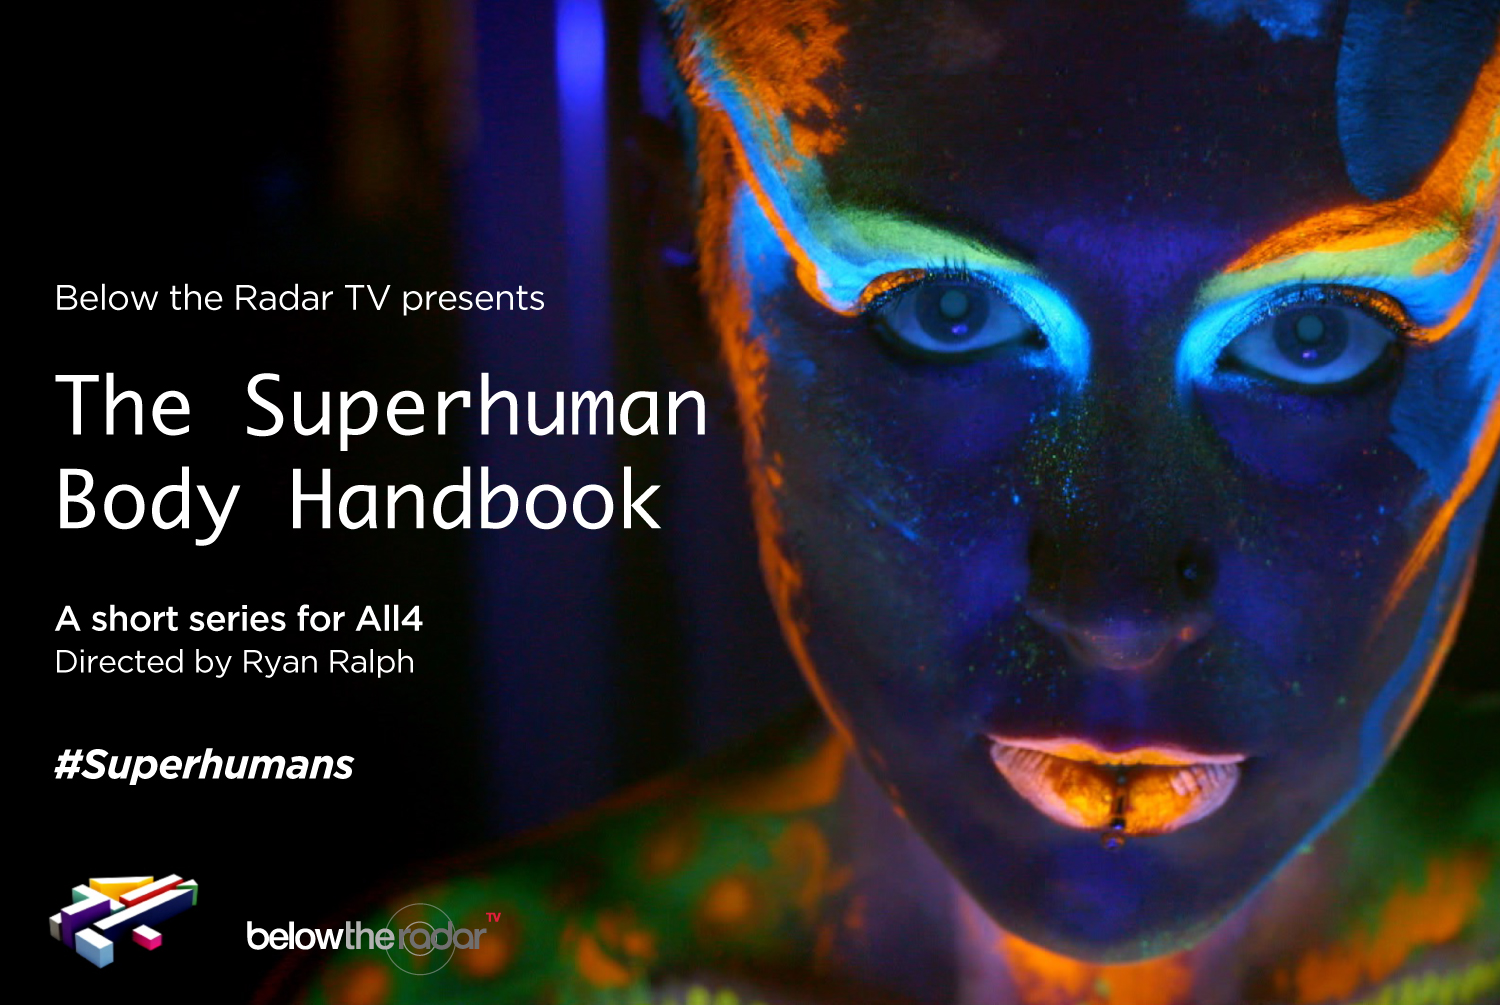 The Superhuman Body Handbook - Series for All4